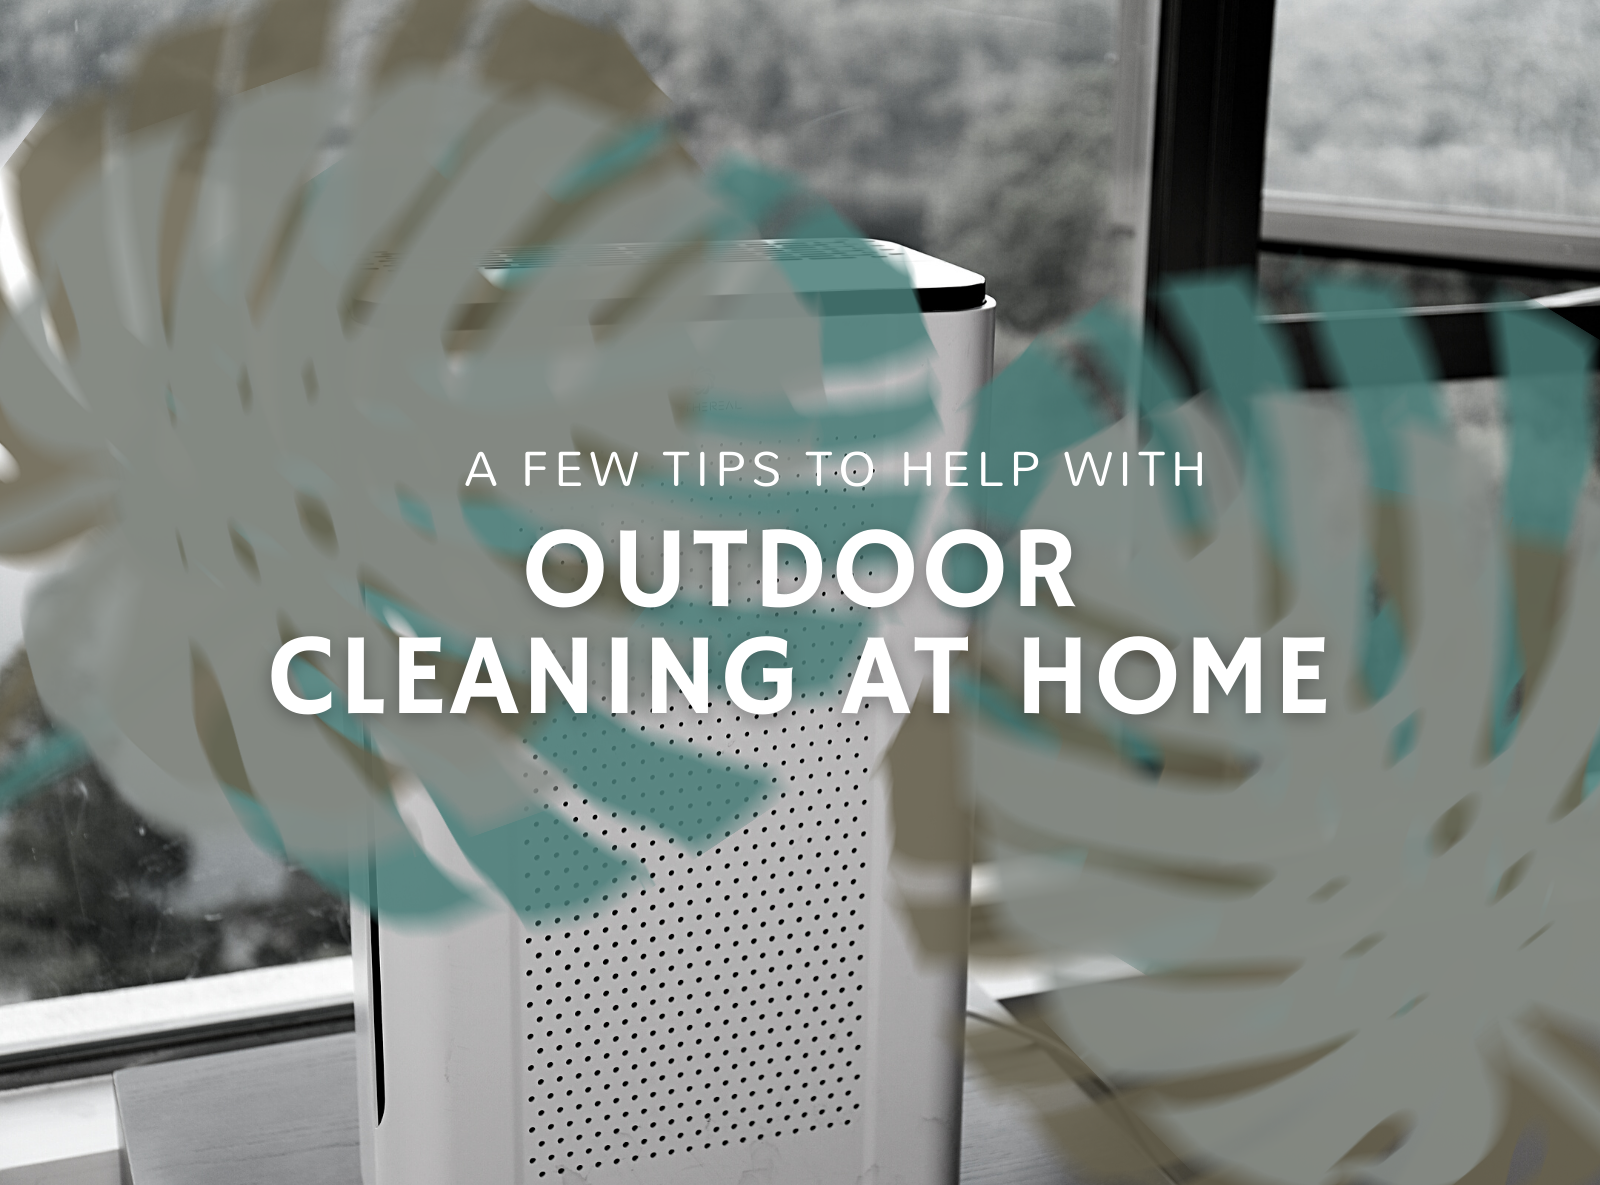 outdoor cleaning at home tips and tricks